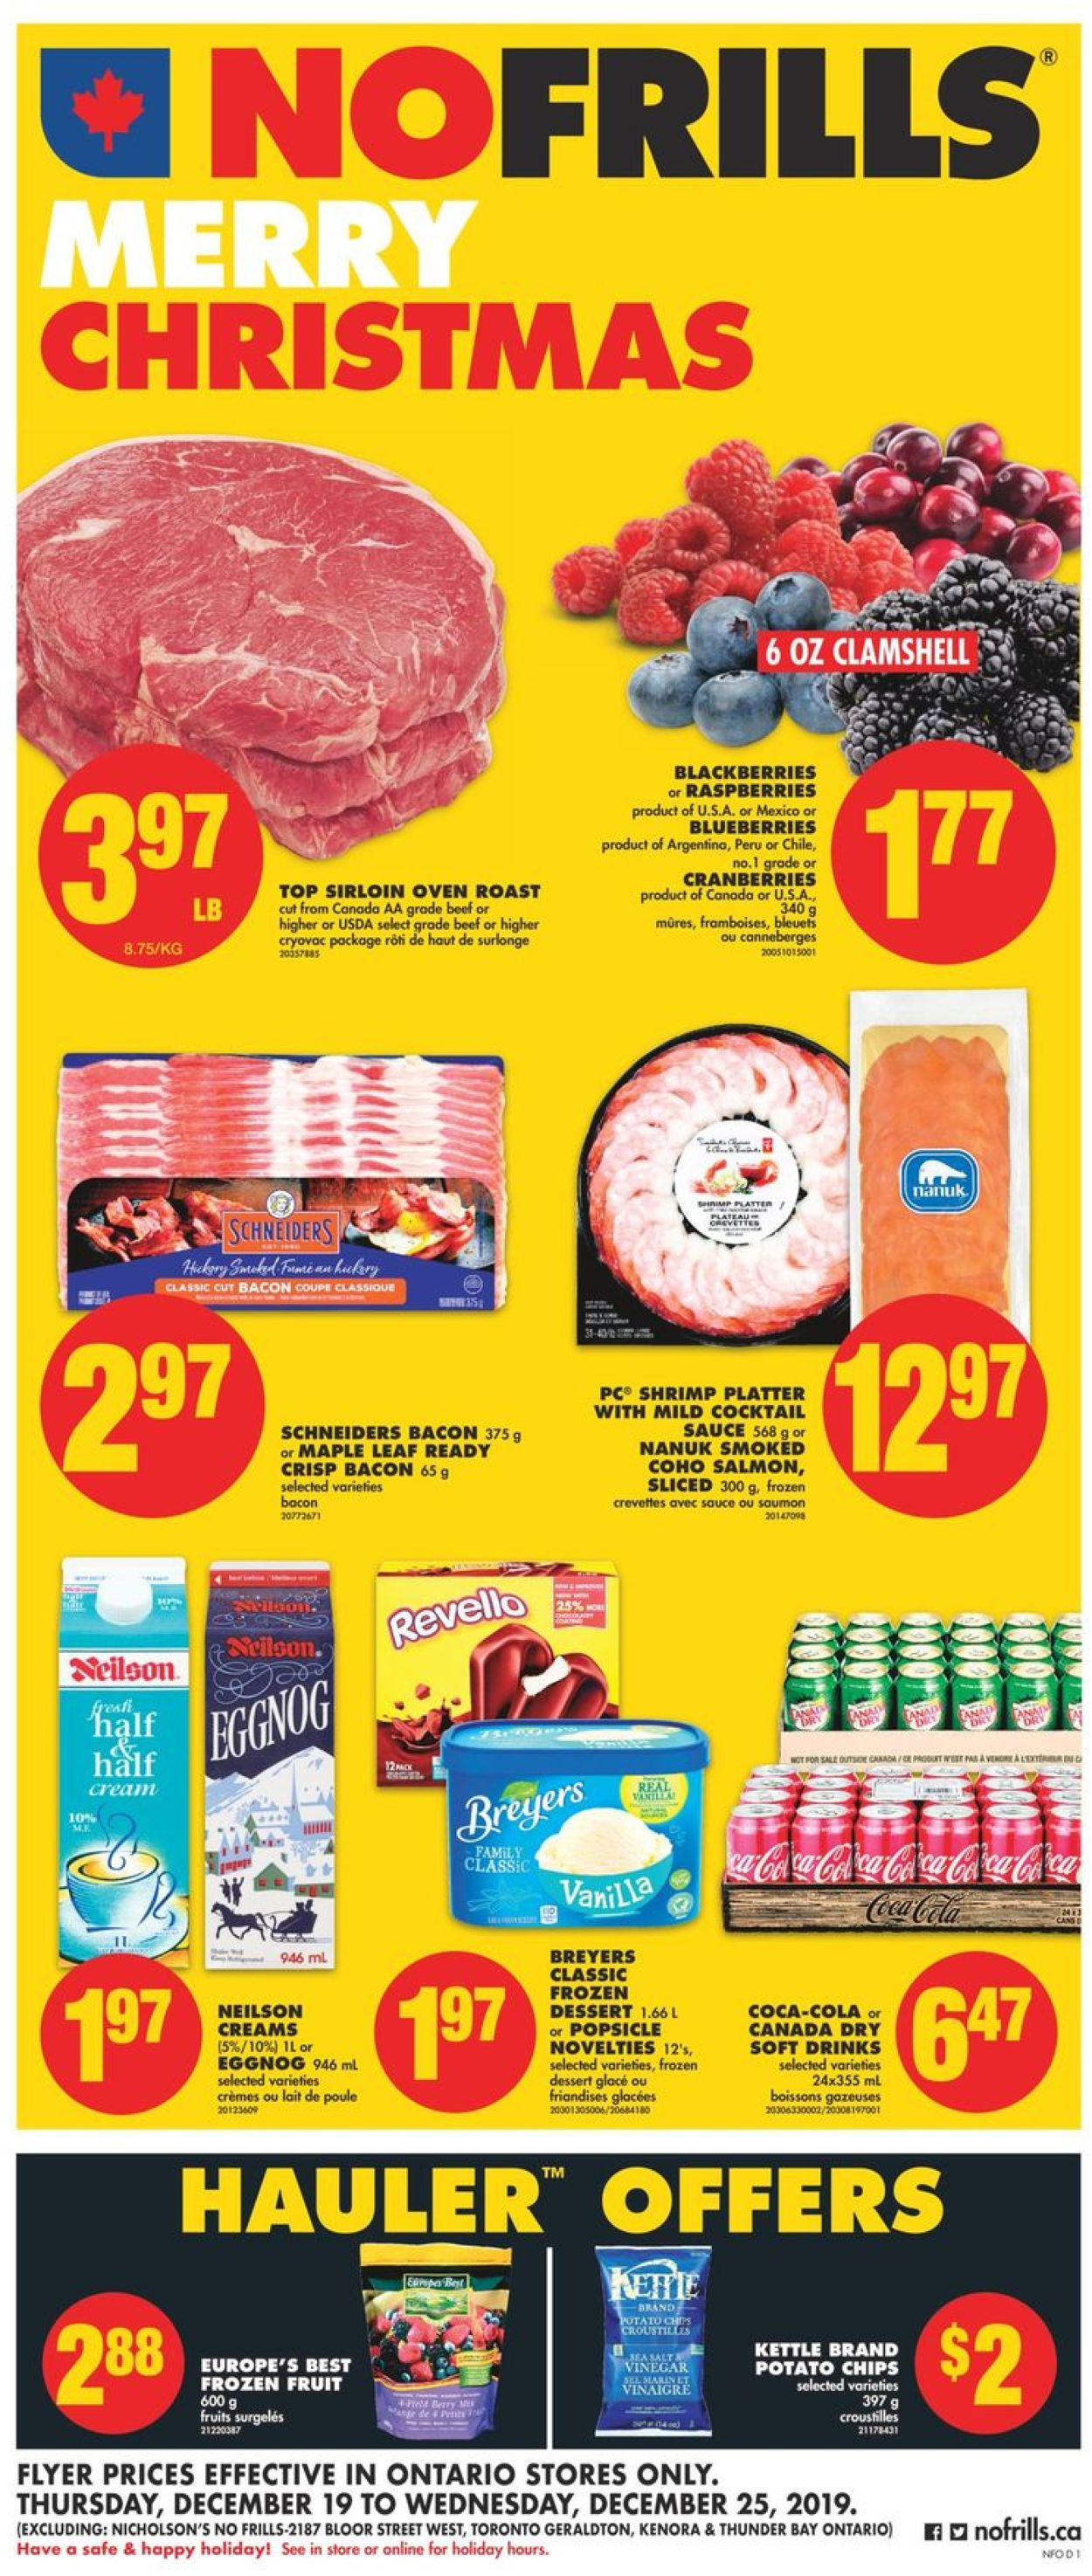 No Frills Christmas Flyer 2019 Flyer - 12/19-12/25/2019